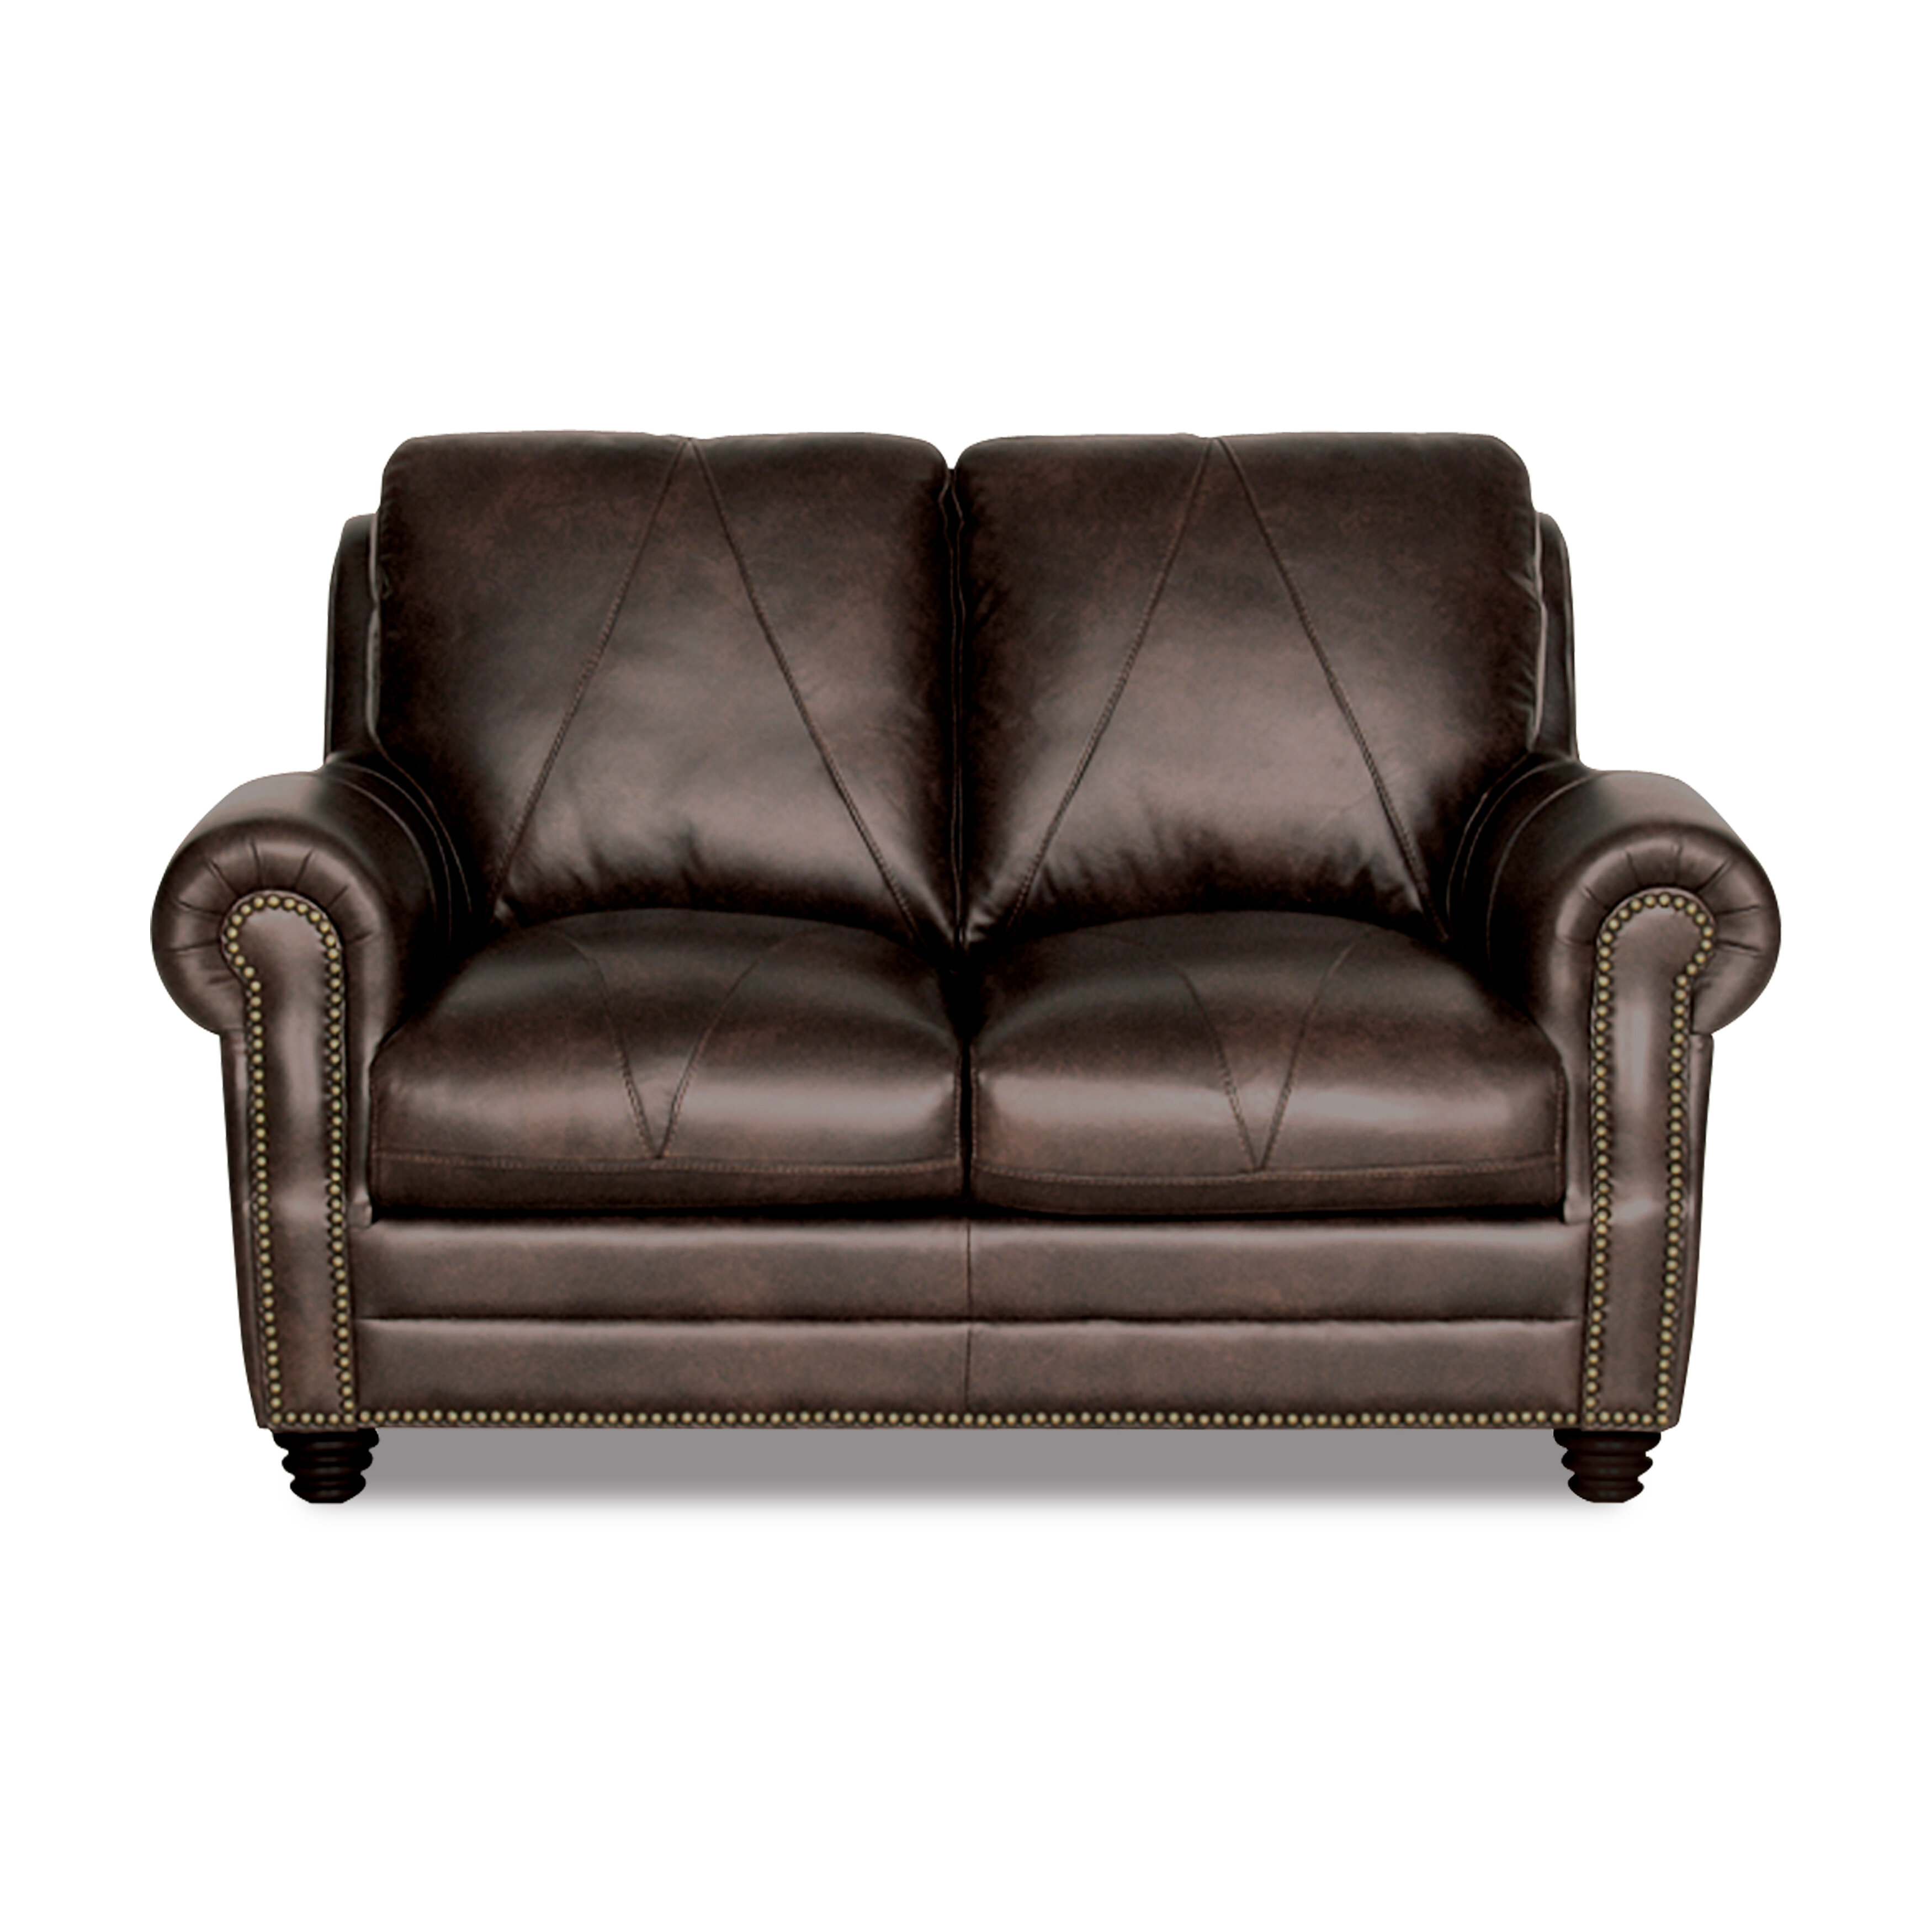 Marvelous Gardner Leather Loveseat Caraccident5 Cool Chair Designs And Ideas Caraccident5Info